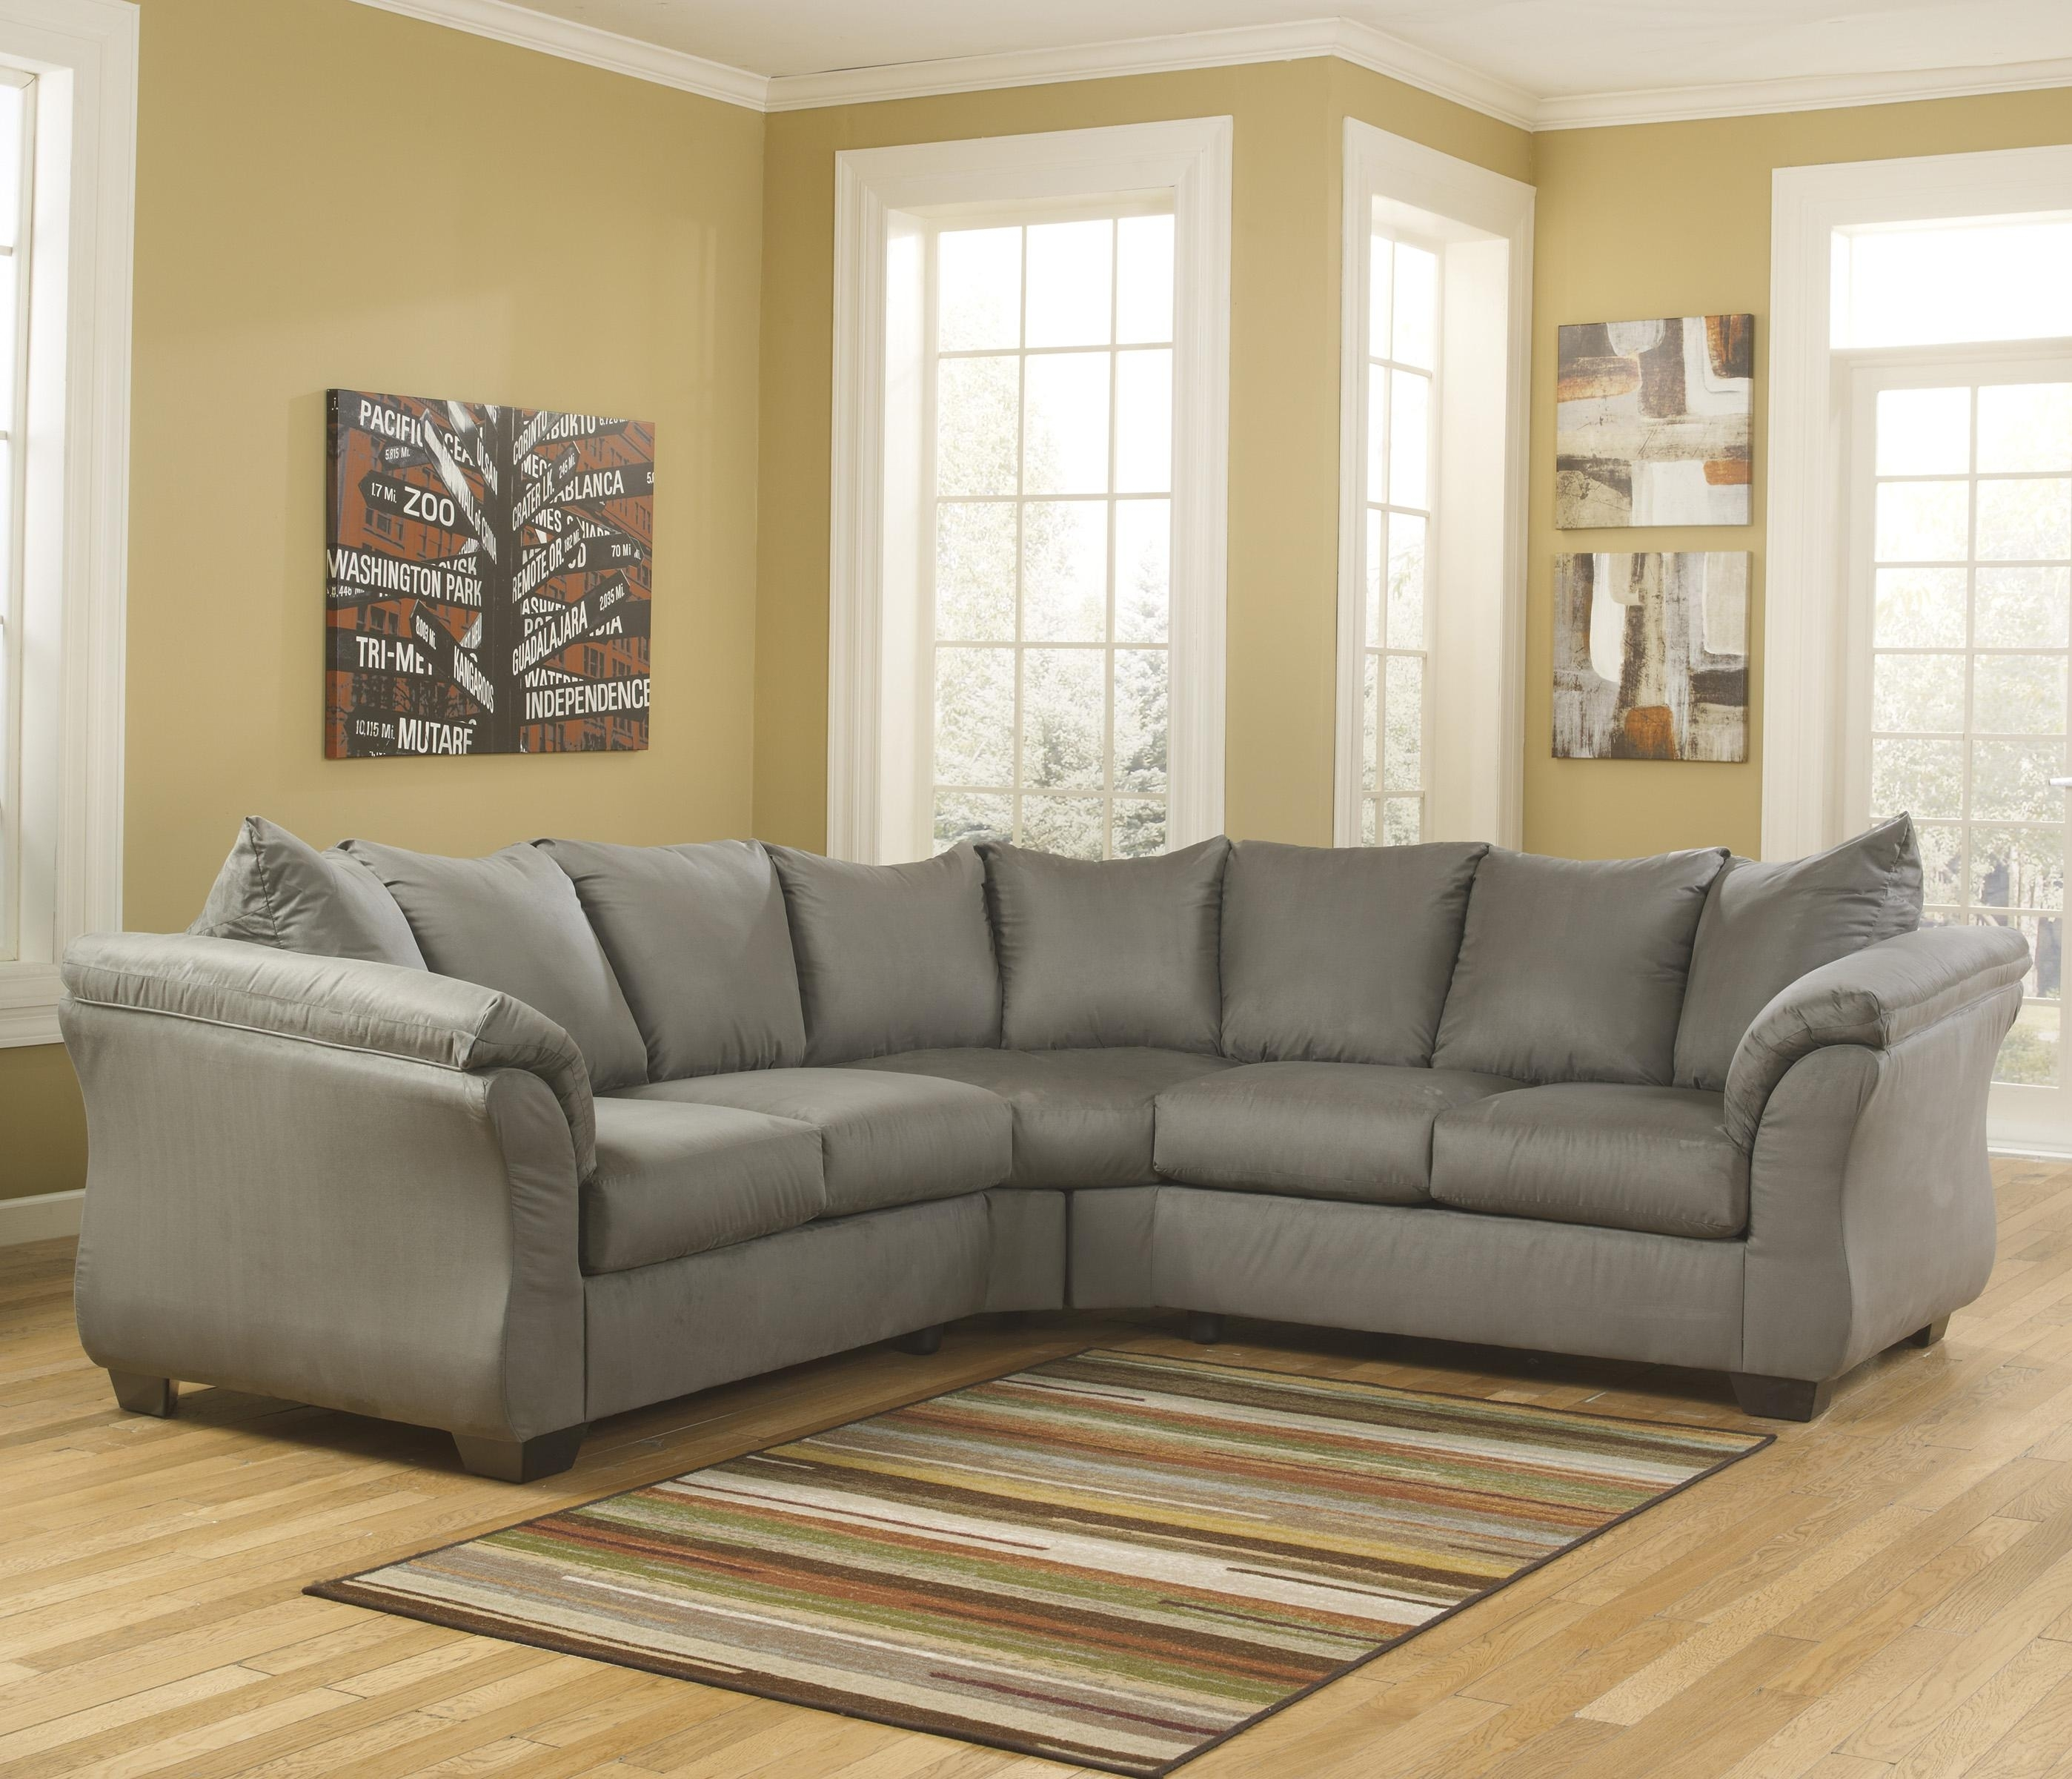 10 Best Collection Of East Bay Sectional Sofas Sofa Ideas